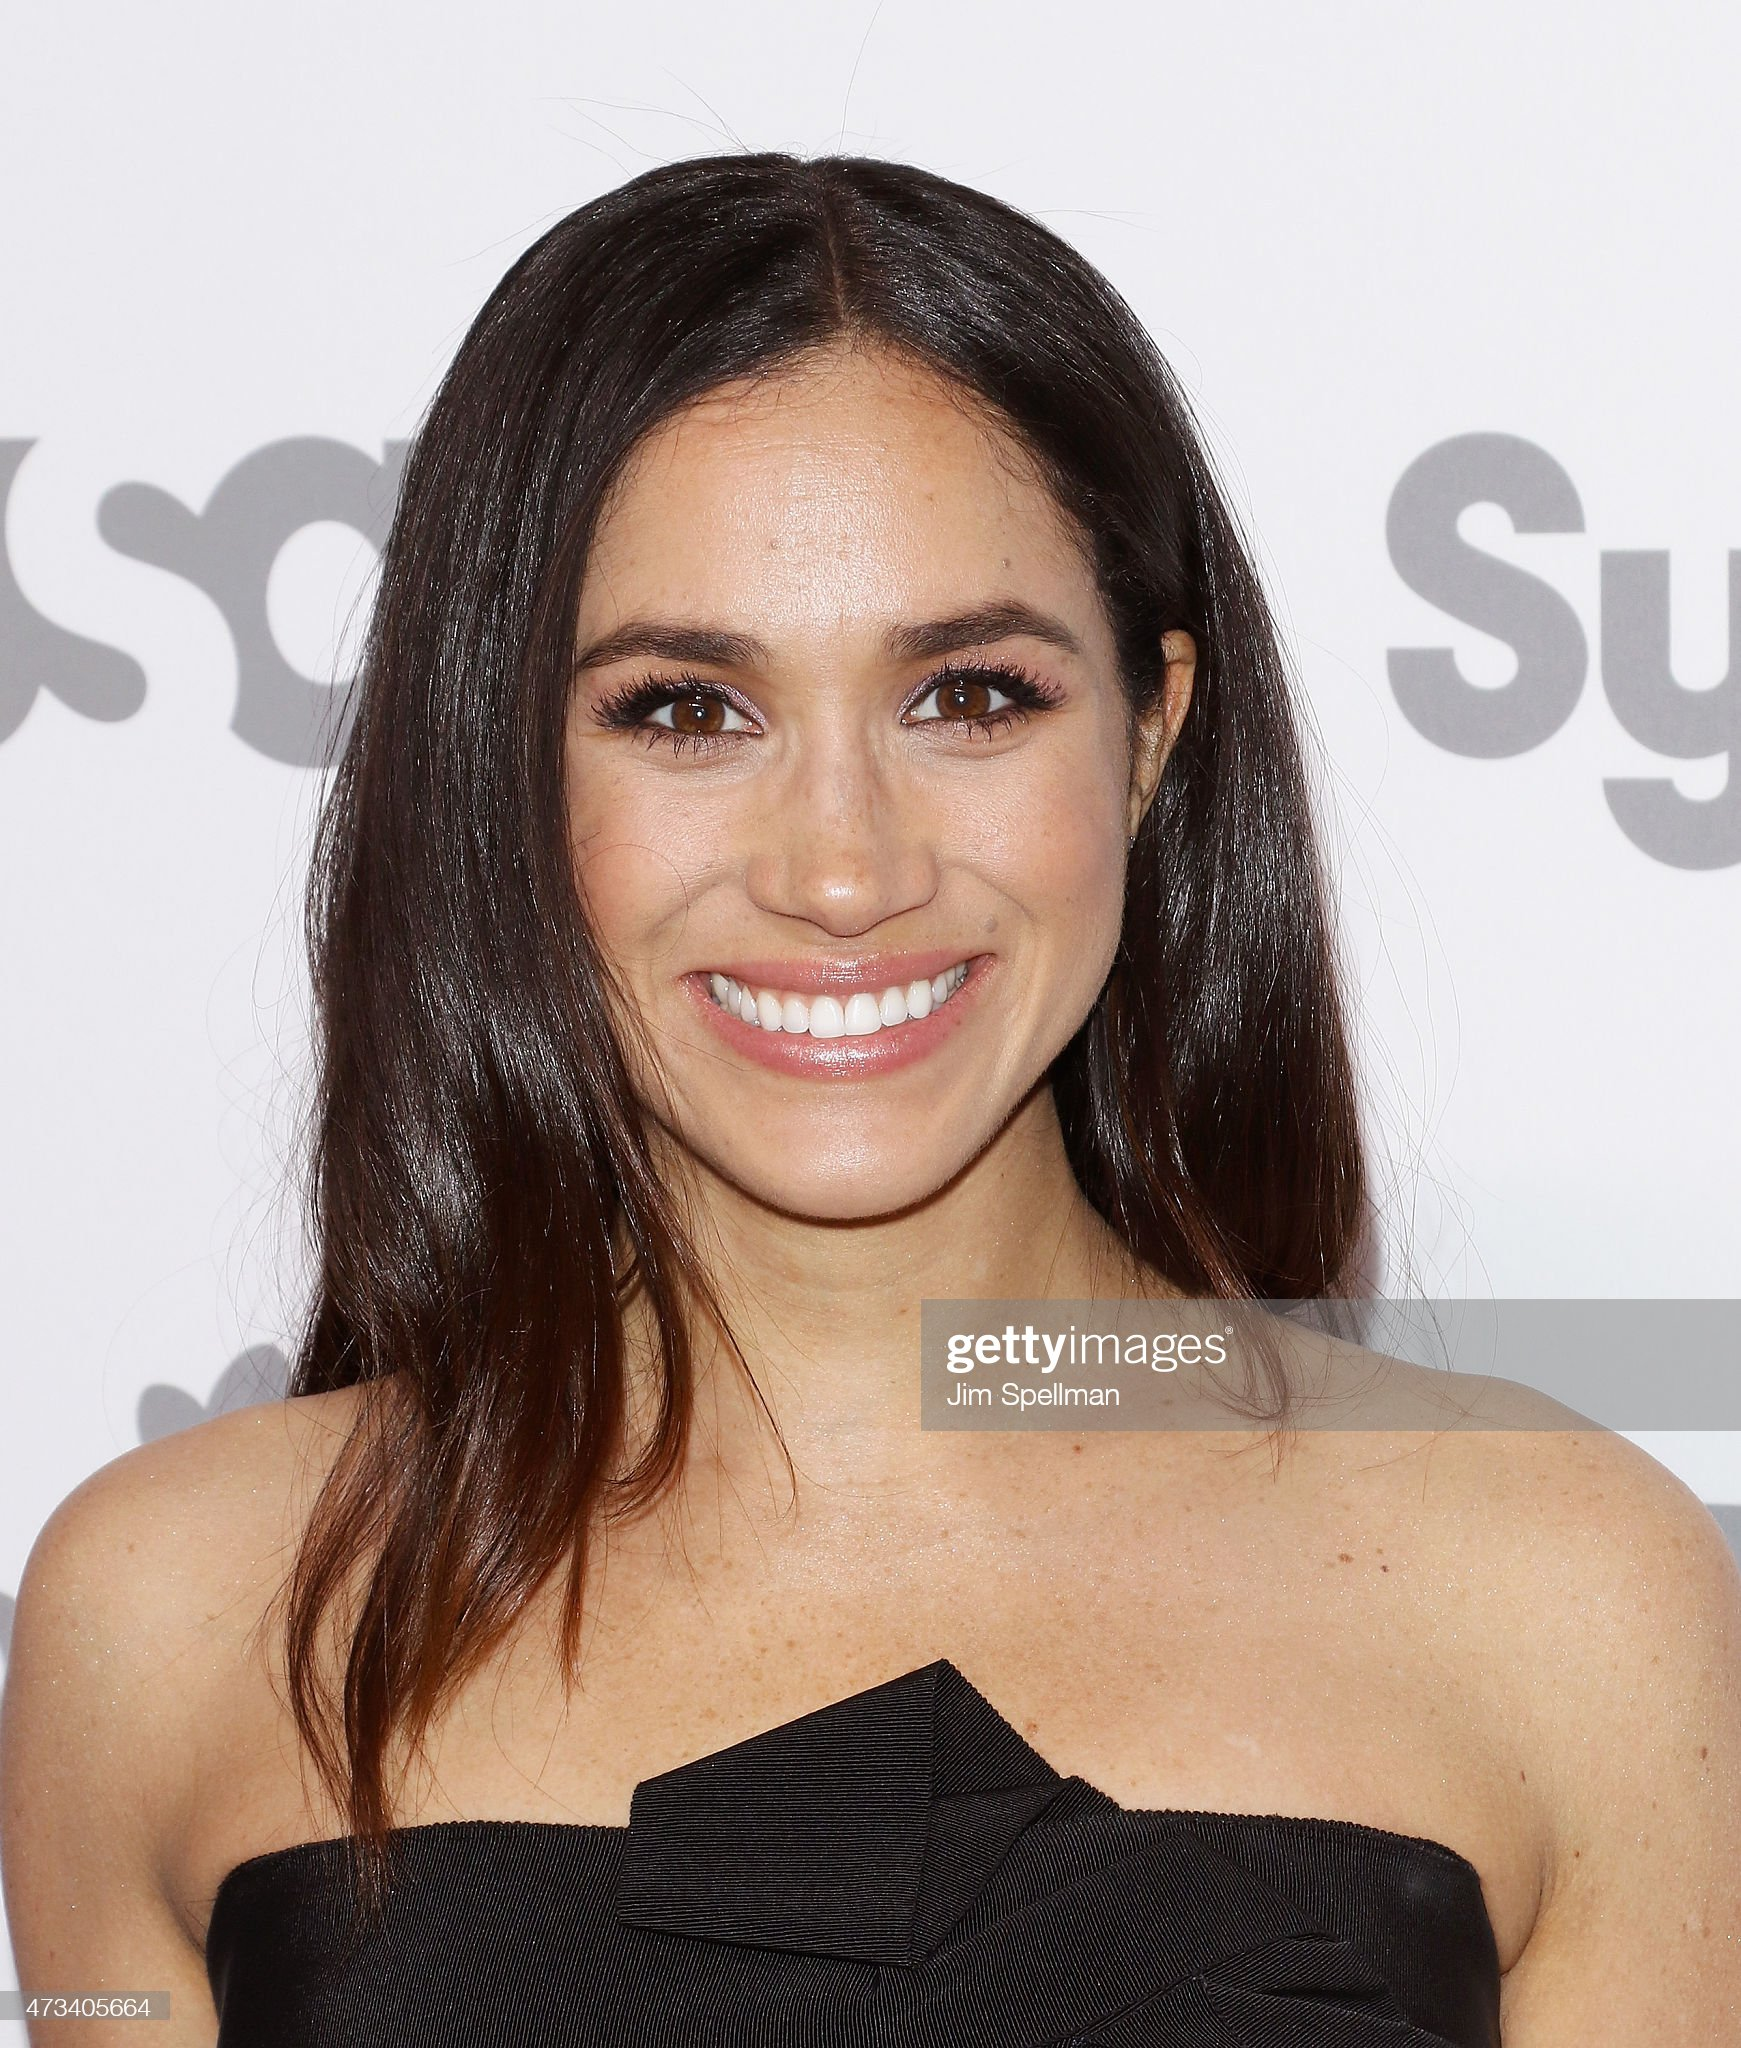 Meghan Markle Actressmodel-meghan-markle-attends-the-2015-nbcuniversal-cable-at-picture-id473405664?s=2048x2048